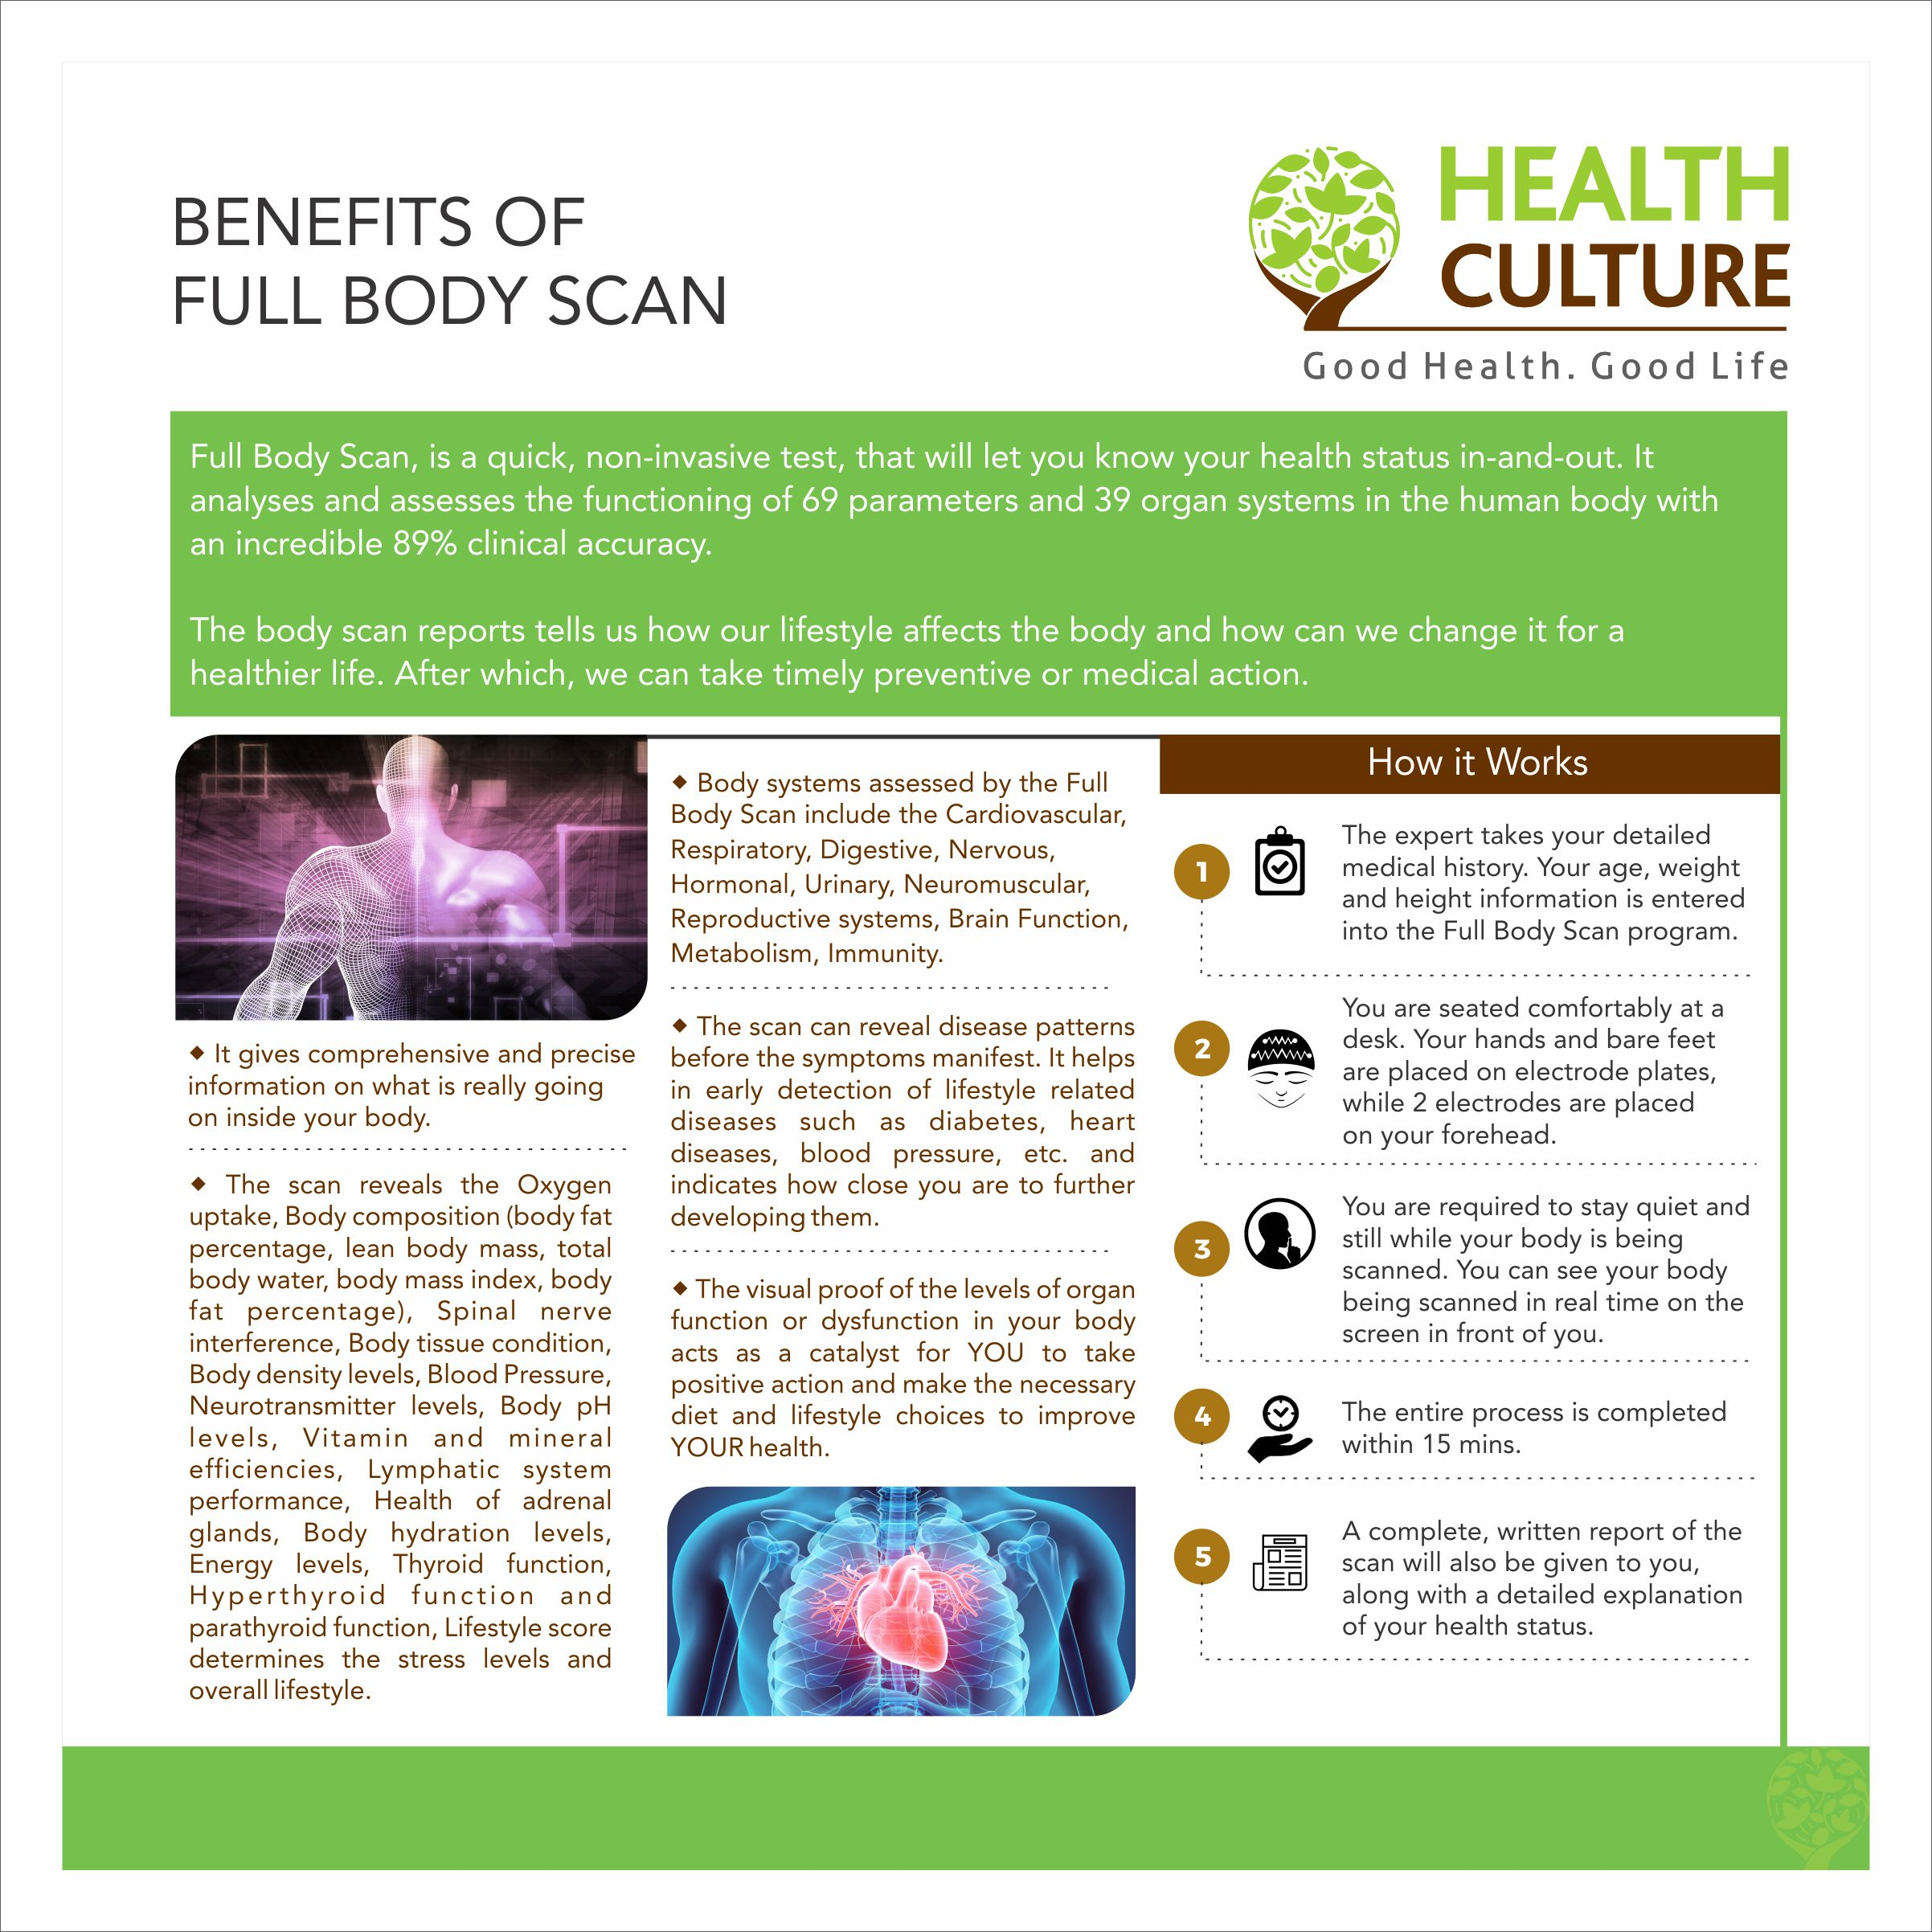 Benefits of Full Body Scan Article - Health Culture